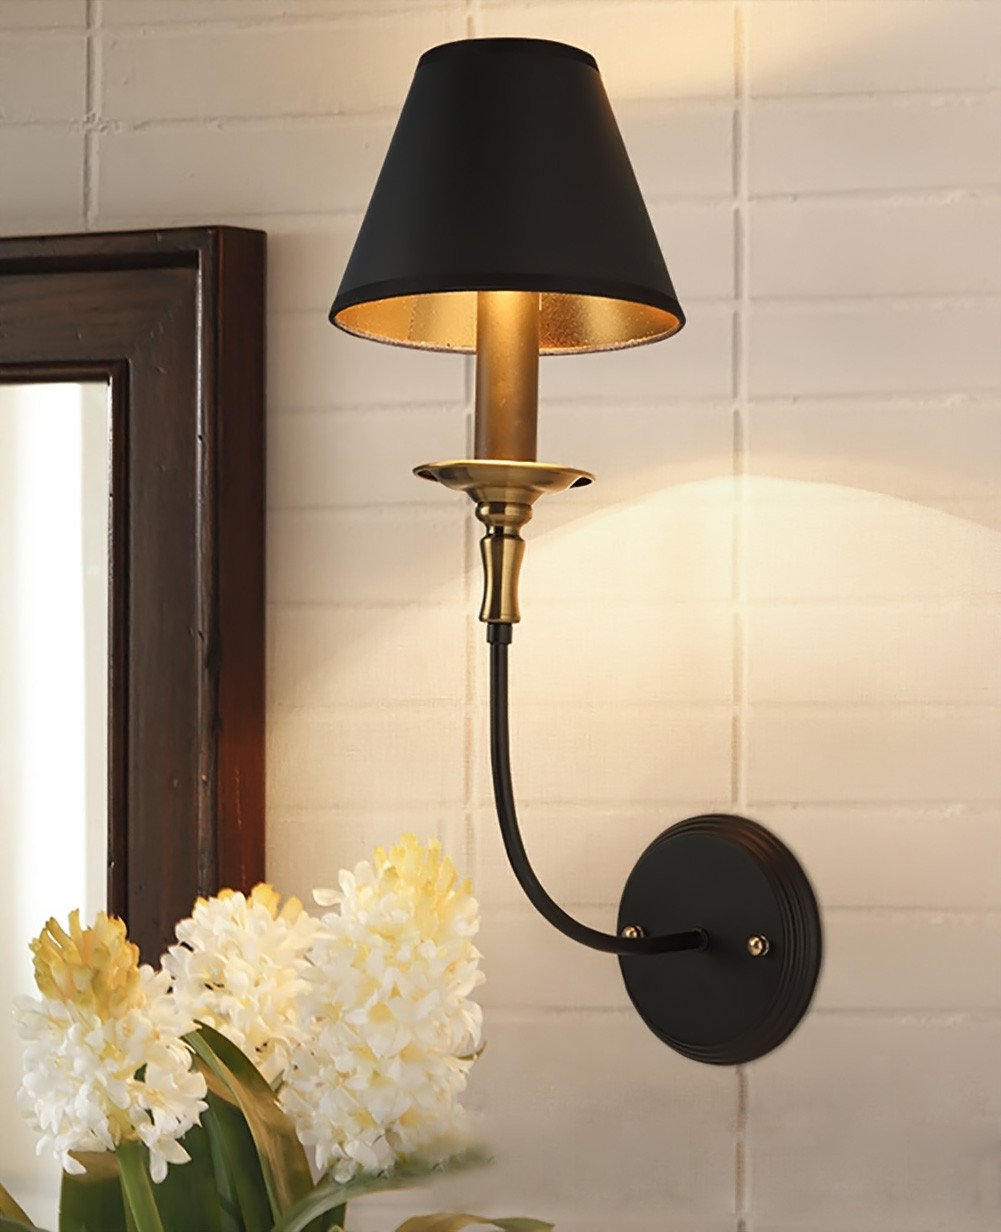 Buy american vintage wall lamp indoor lighting bedside lamps iron american vintage wall lamp indoor lighting bedside lamps iron wall lights industrial loft wall sconce fixtures for home e27 220v mozeypictures Gallery